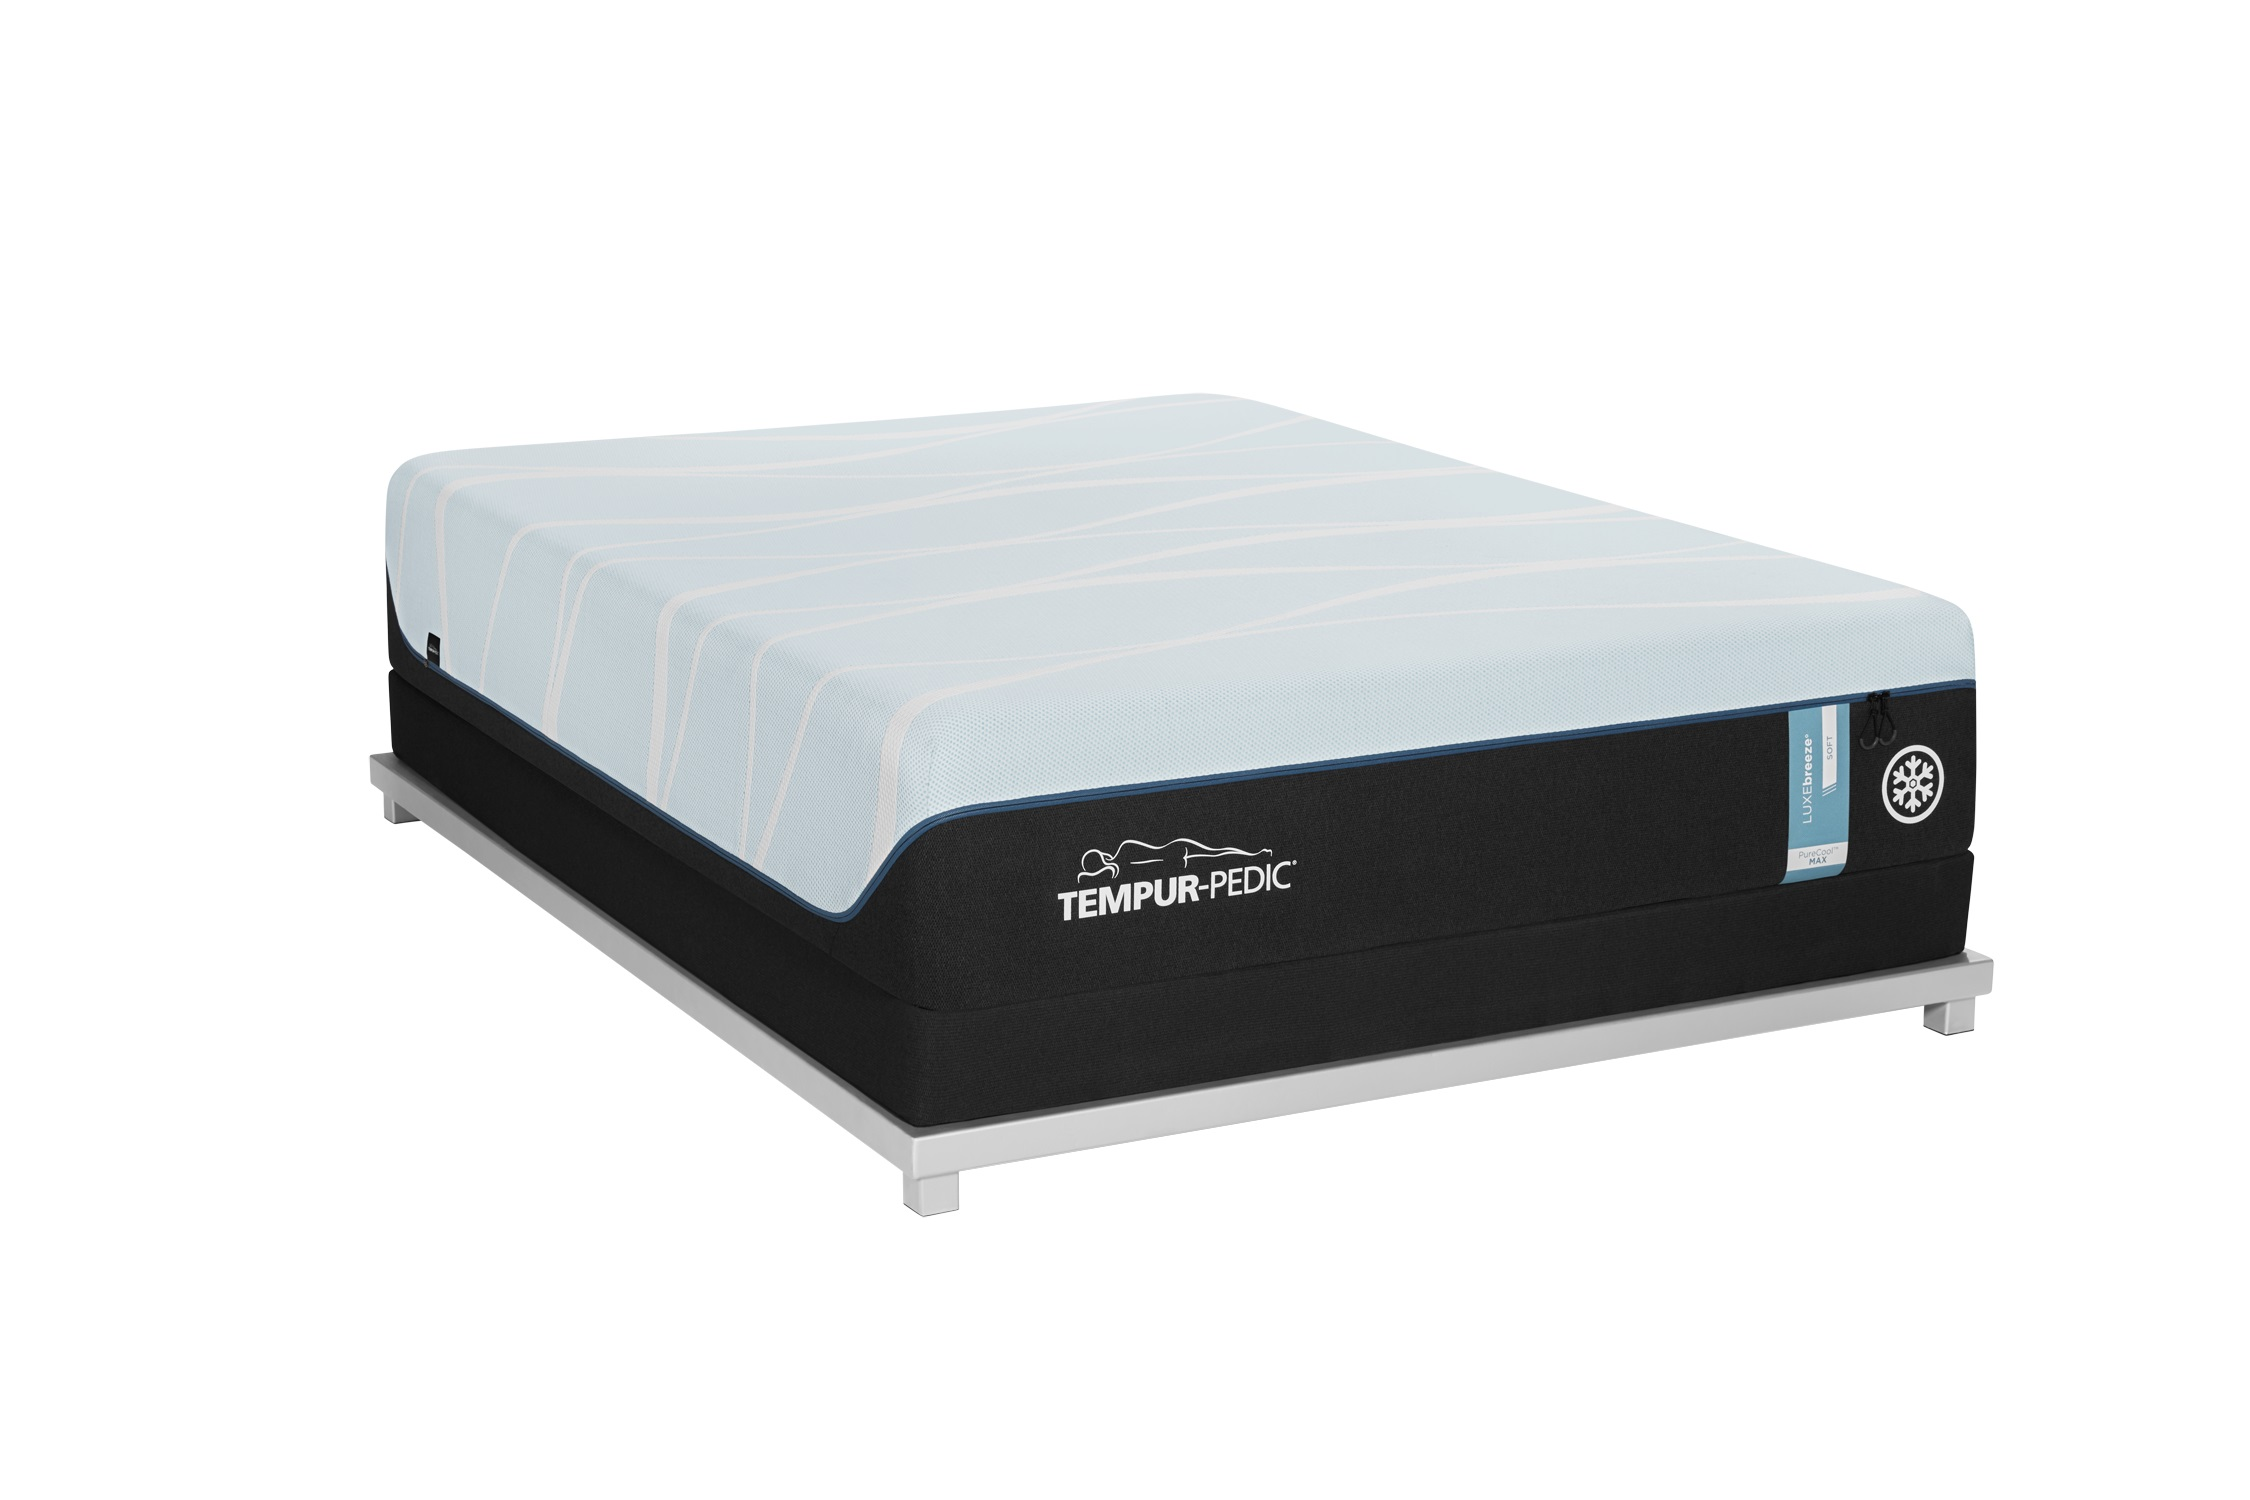 Tempur-Pedic LUXE Breeze Soft Mattress